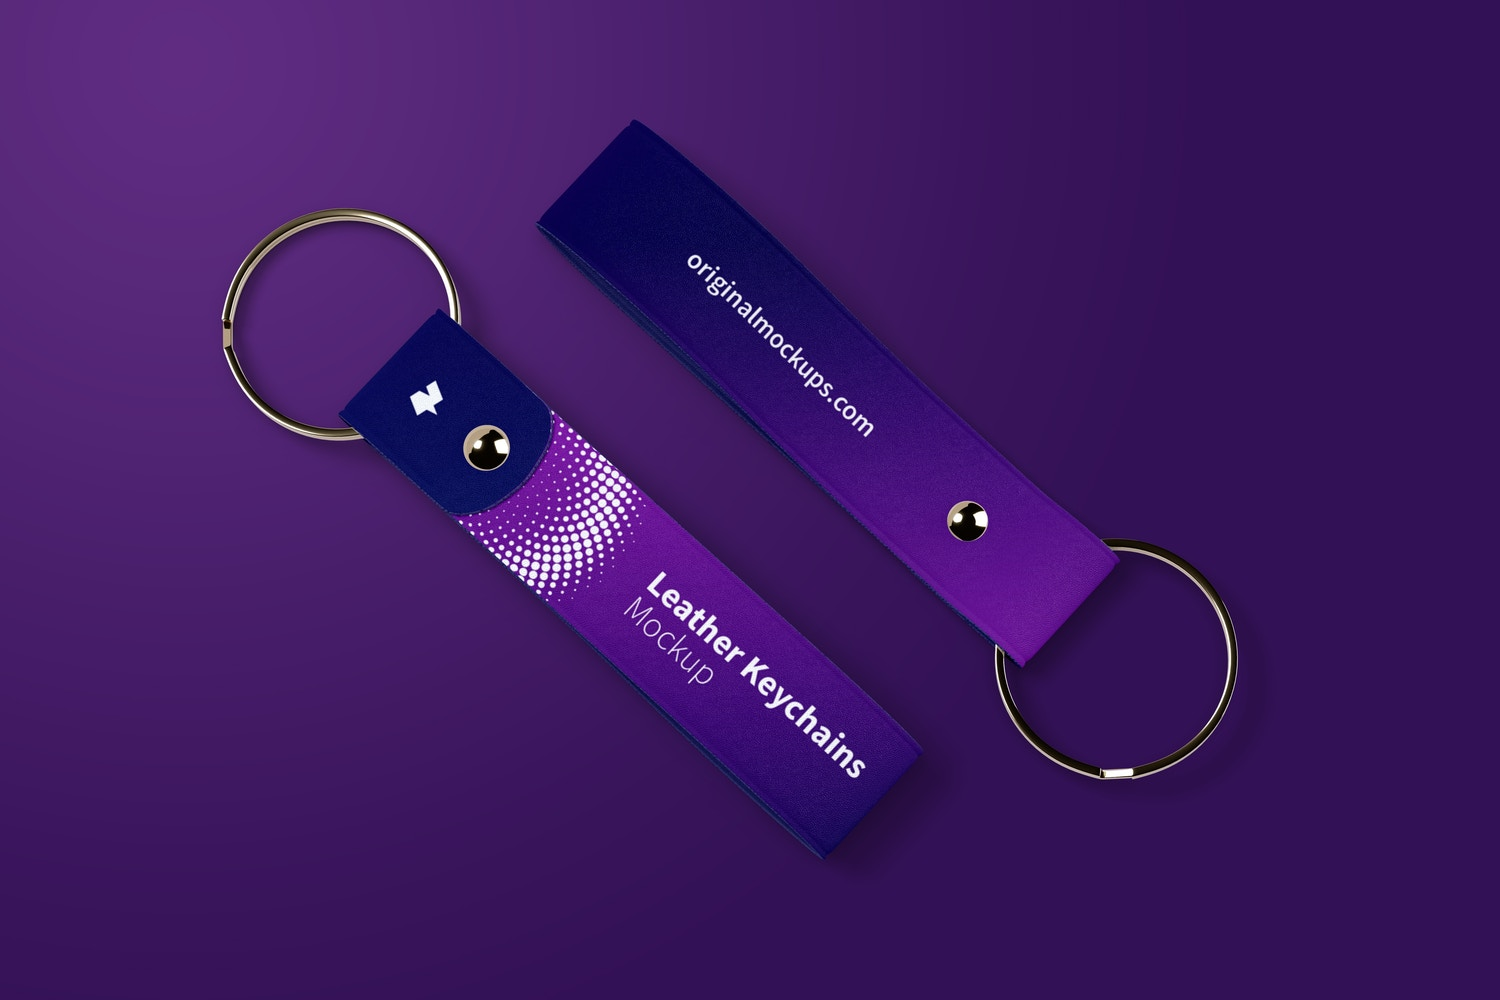 This mockup is ideal for promoting brands, corporate logos, and advertising pieces.